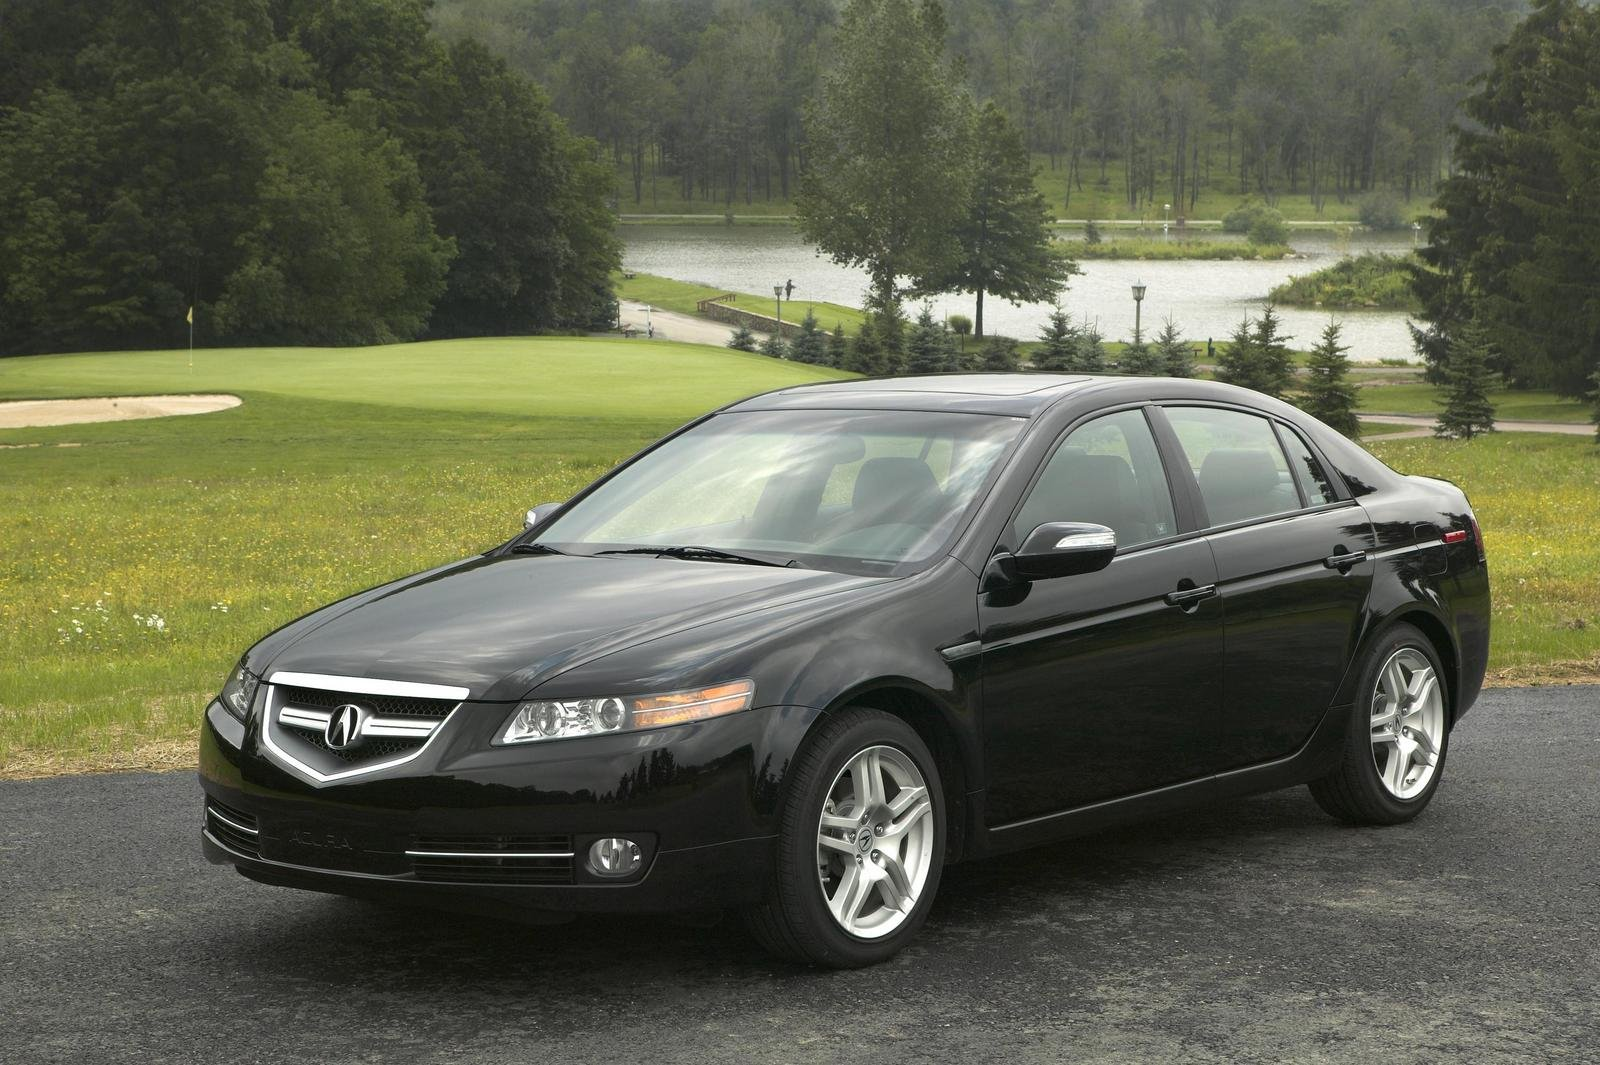 2007 acura tl review top speed. Black Bedroom Furniture Sets. Home Design Ideas